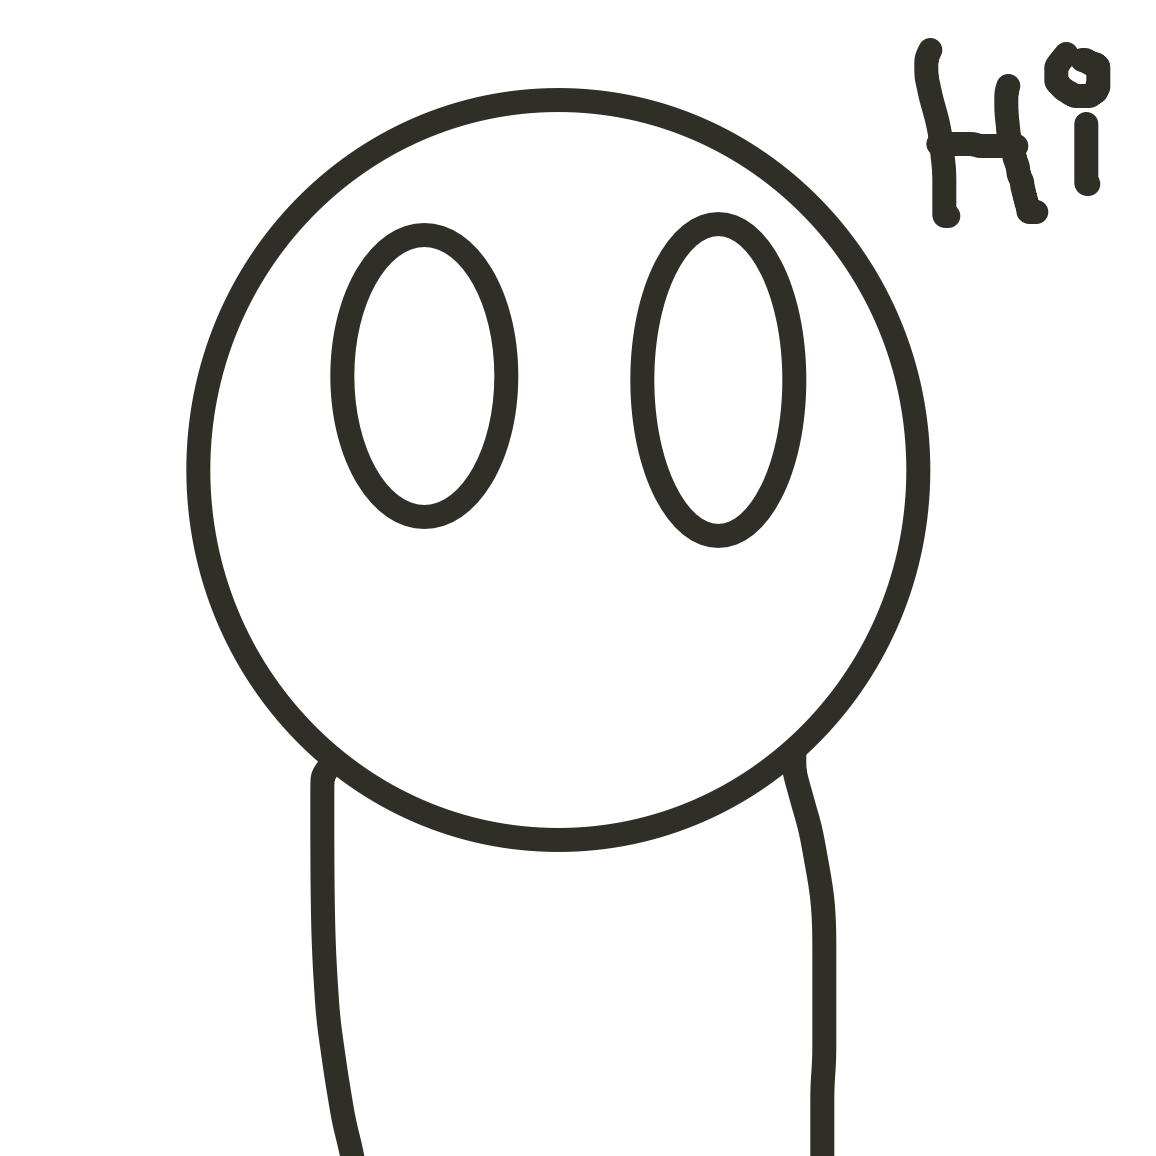 Liked webcomic Hello